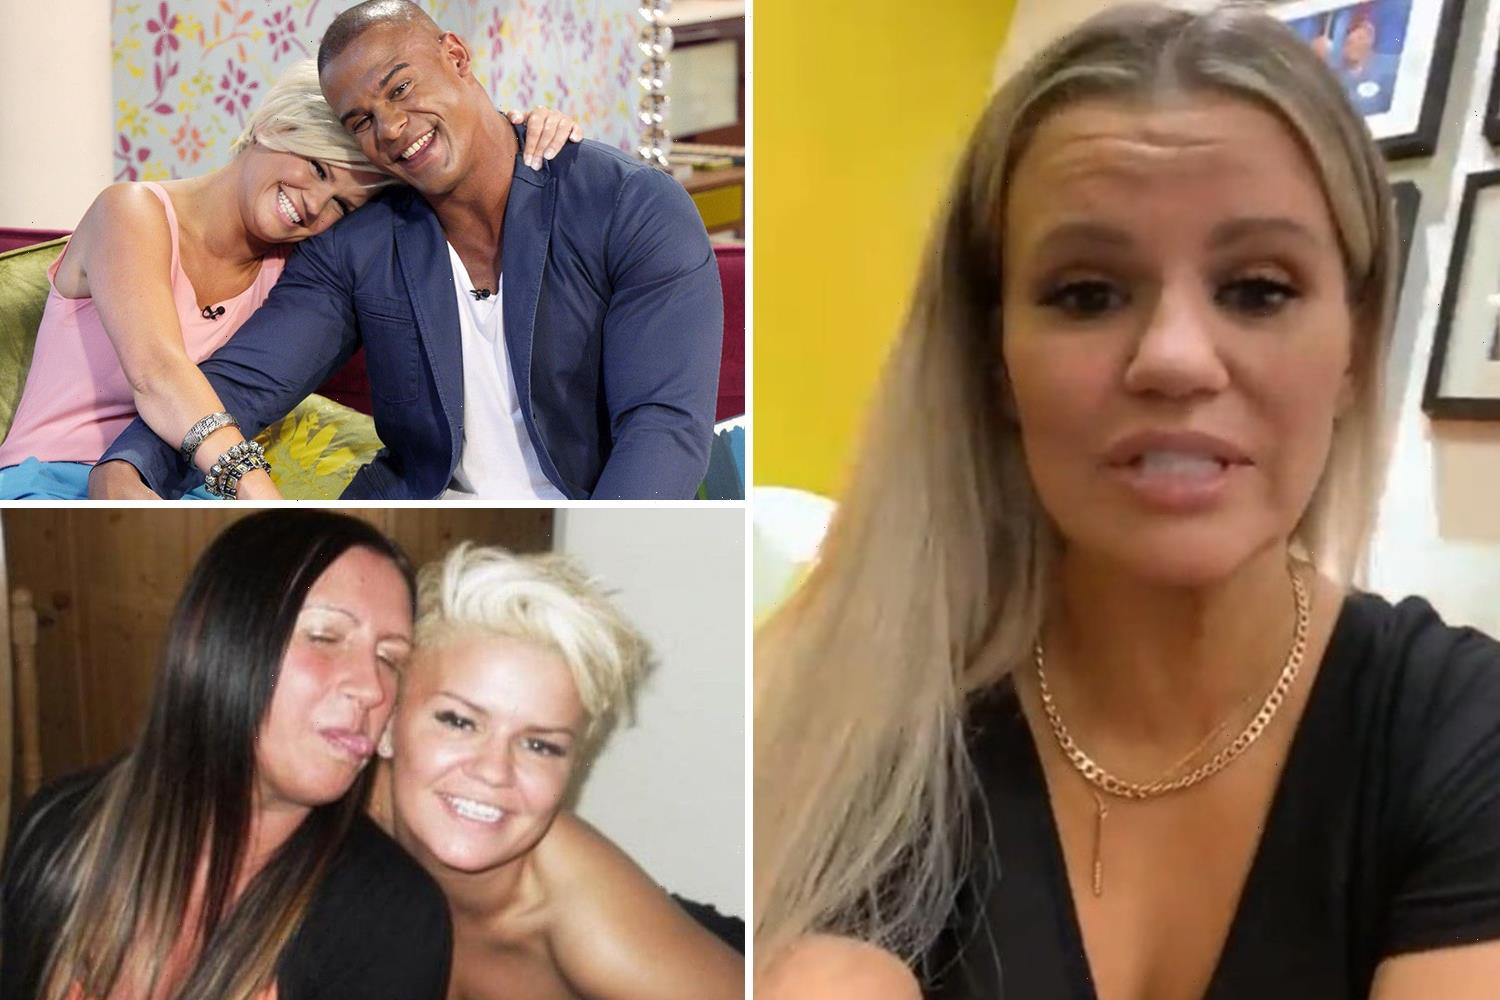 Kerry Katona breaks down in tears as she reveals pain over losing her ex husband and auntie to addiction